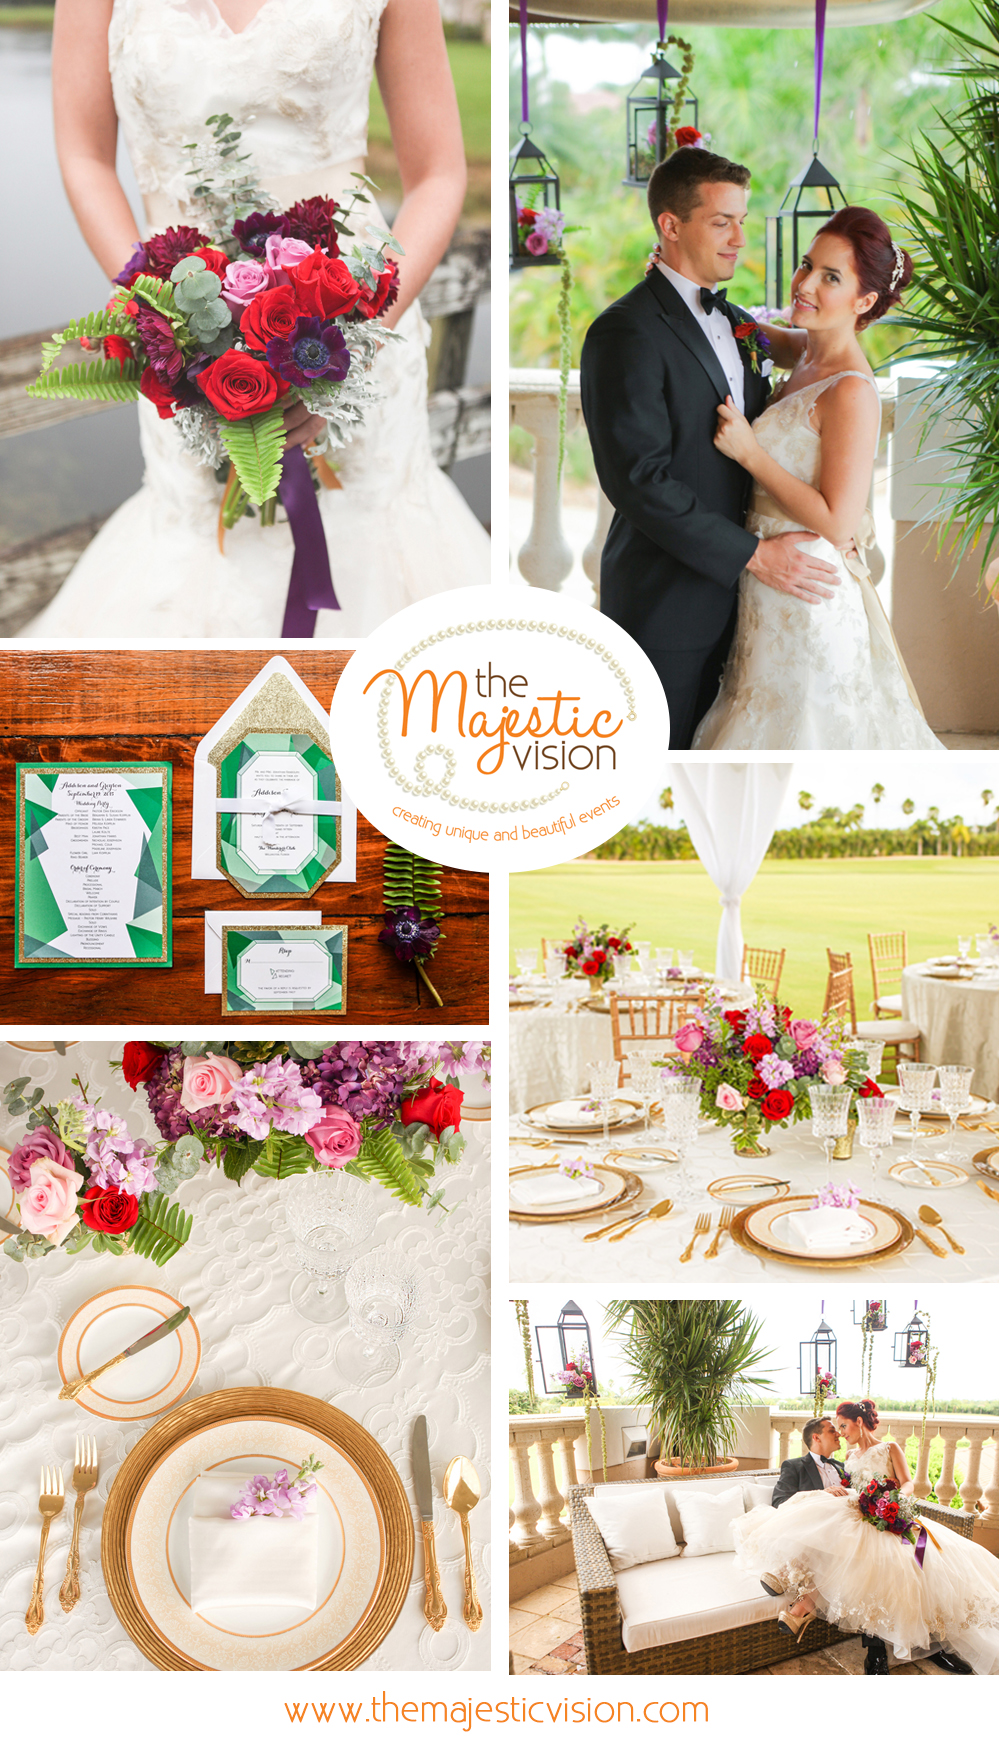 Whimsical Emerald and Amethyst Wedding | The Majestic Vision Wedding Planning | The Wanderers Club in Wellington, FL | www.themajesticvision.com | Krystal Zaskey Photography